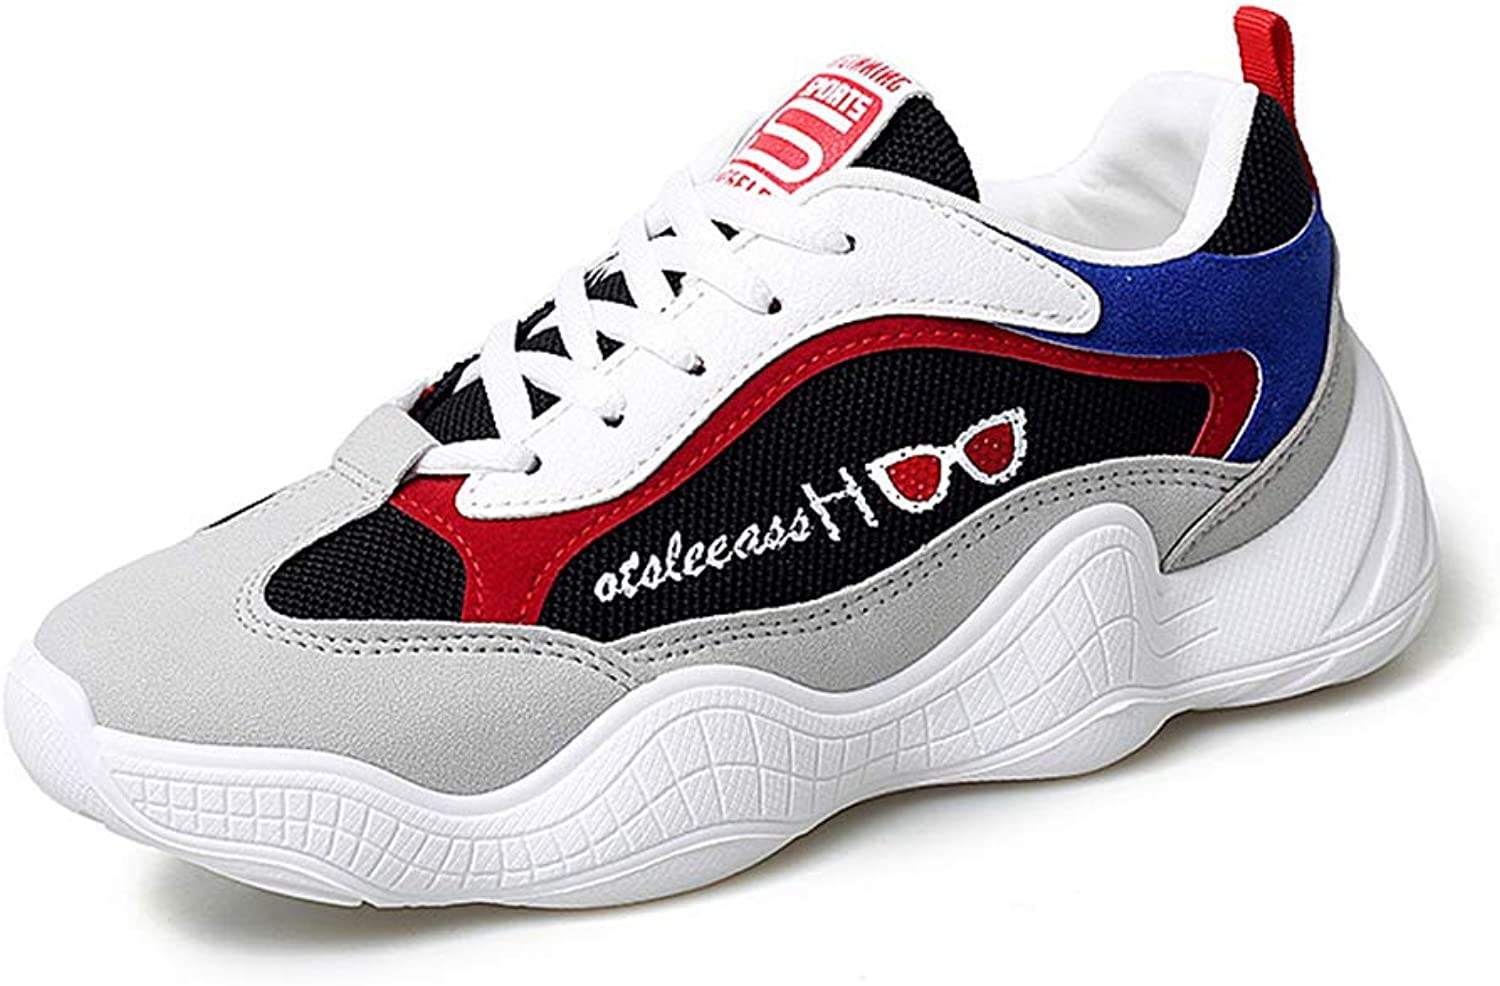 Women's colorblock Chunky Retro Dad Sneaker shoes Trainers Gym shoes